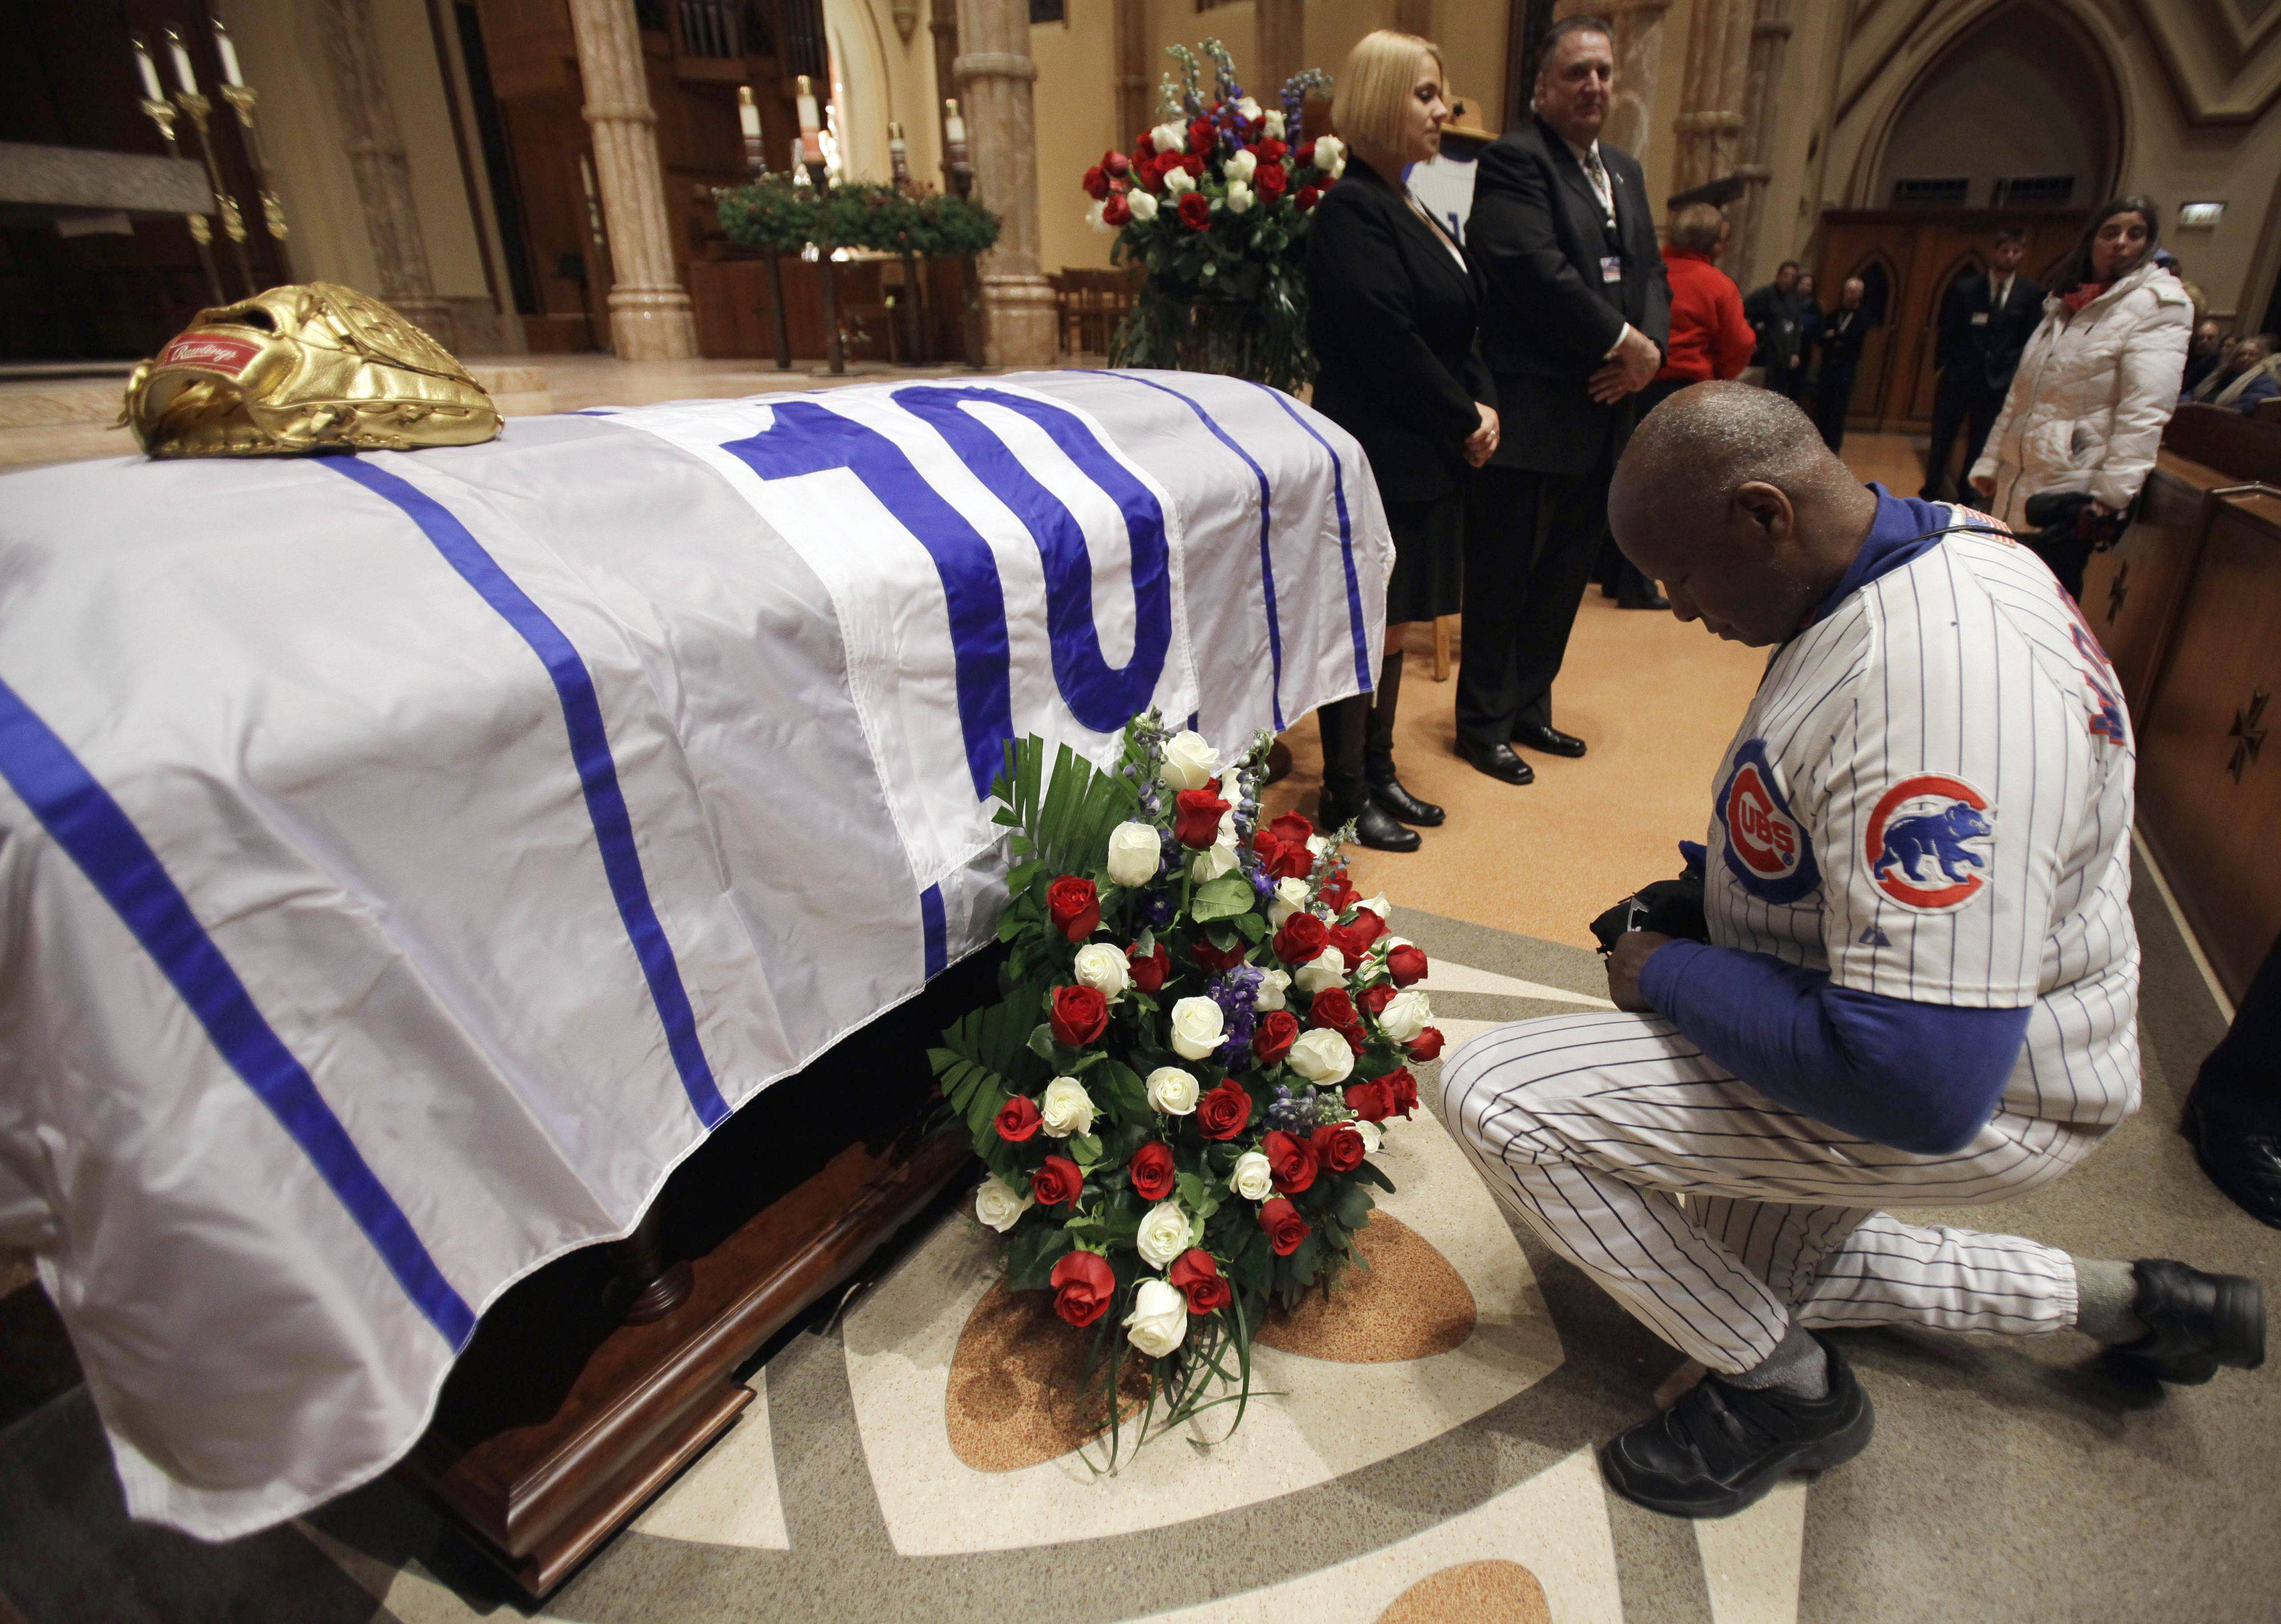 Woo-Woo, right, prays during the visitation for Chicago Cubs great and longtime radio announcer Ron Santo at Holy Name Cathedral, Thursday, Dec. 9, 2010, in Chicago. The nine-time all-star died Thursday, Dec. 2 in an Arizona hospital from complication of bladder cancer. He was 70. (AP Photo/Nam Y. Huh, Pool)